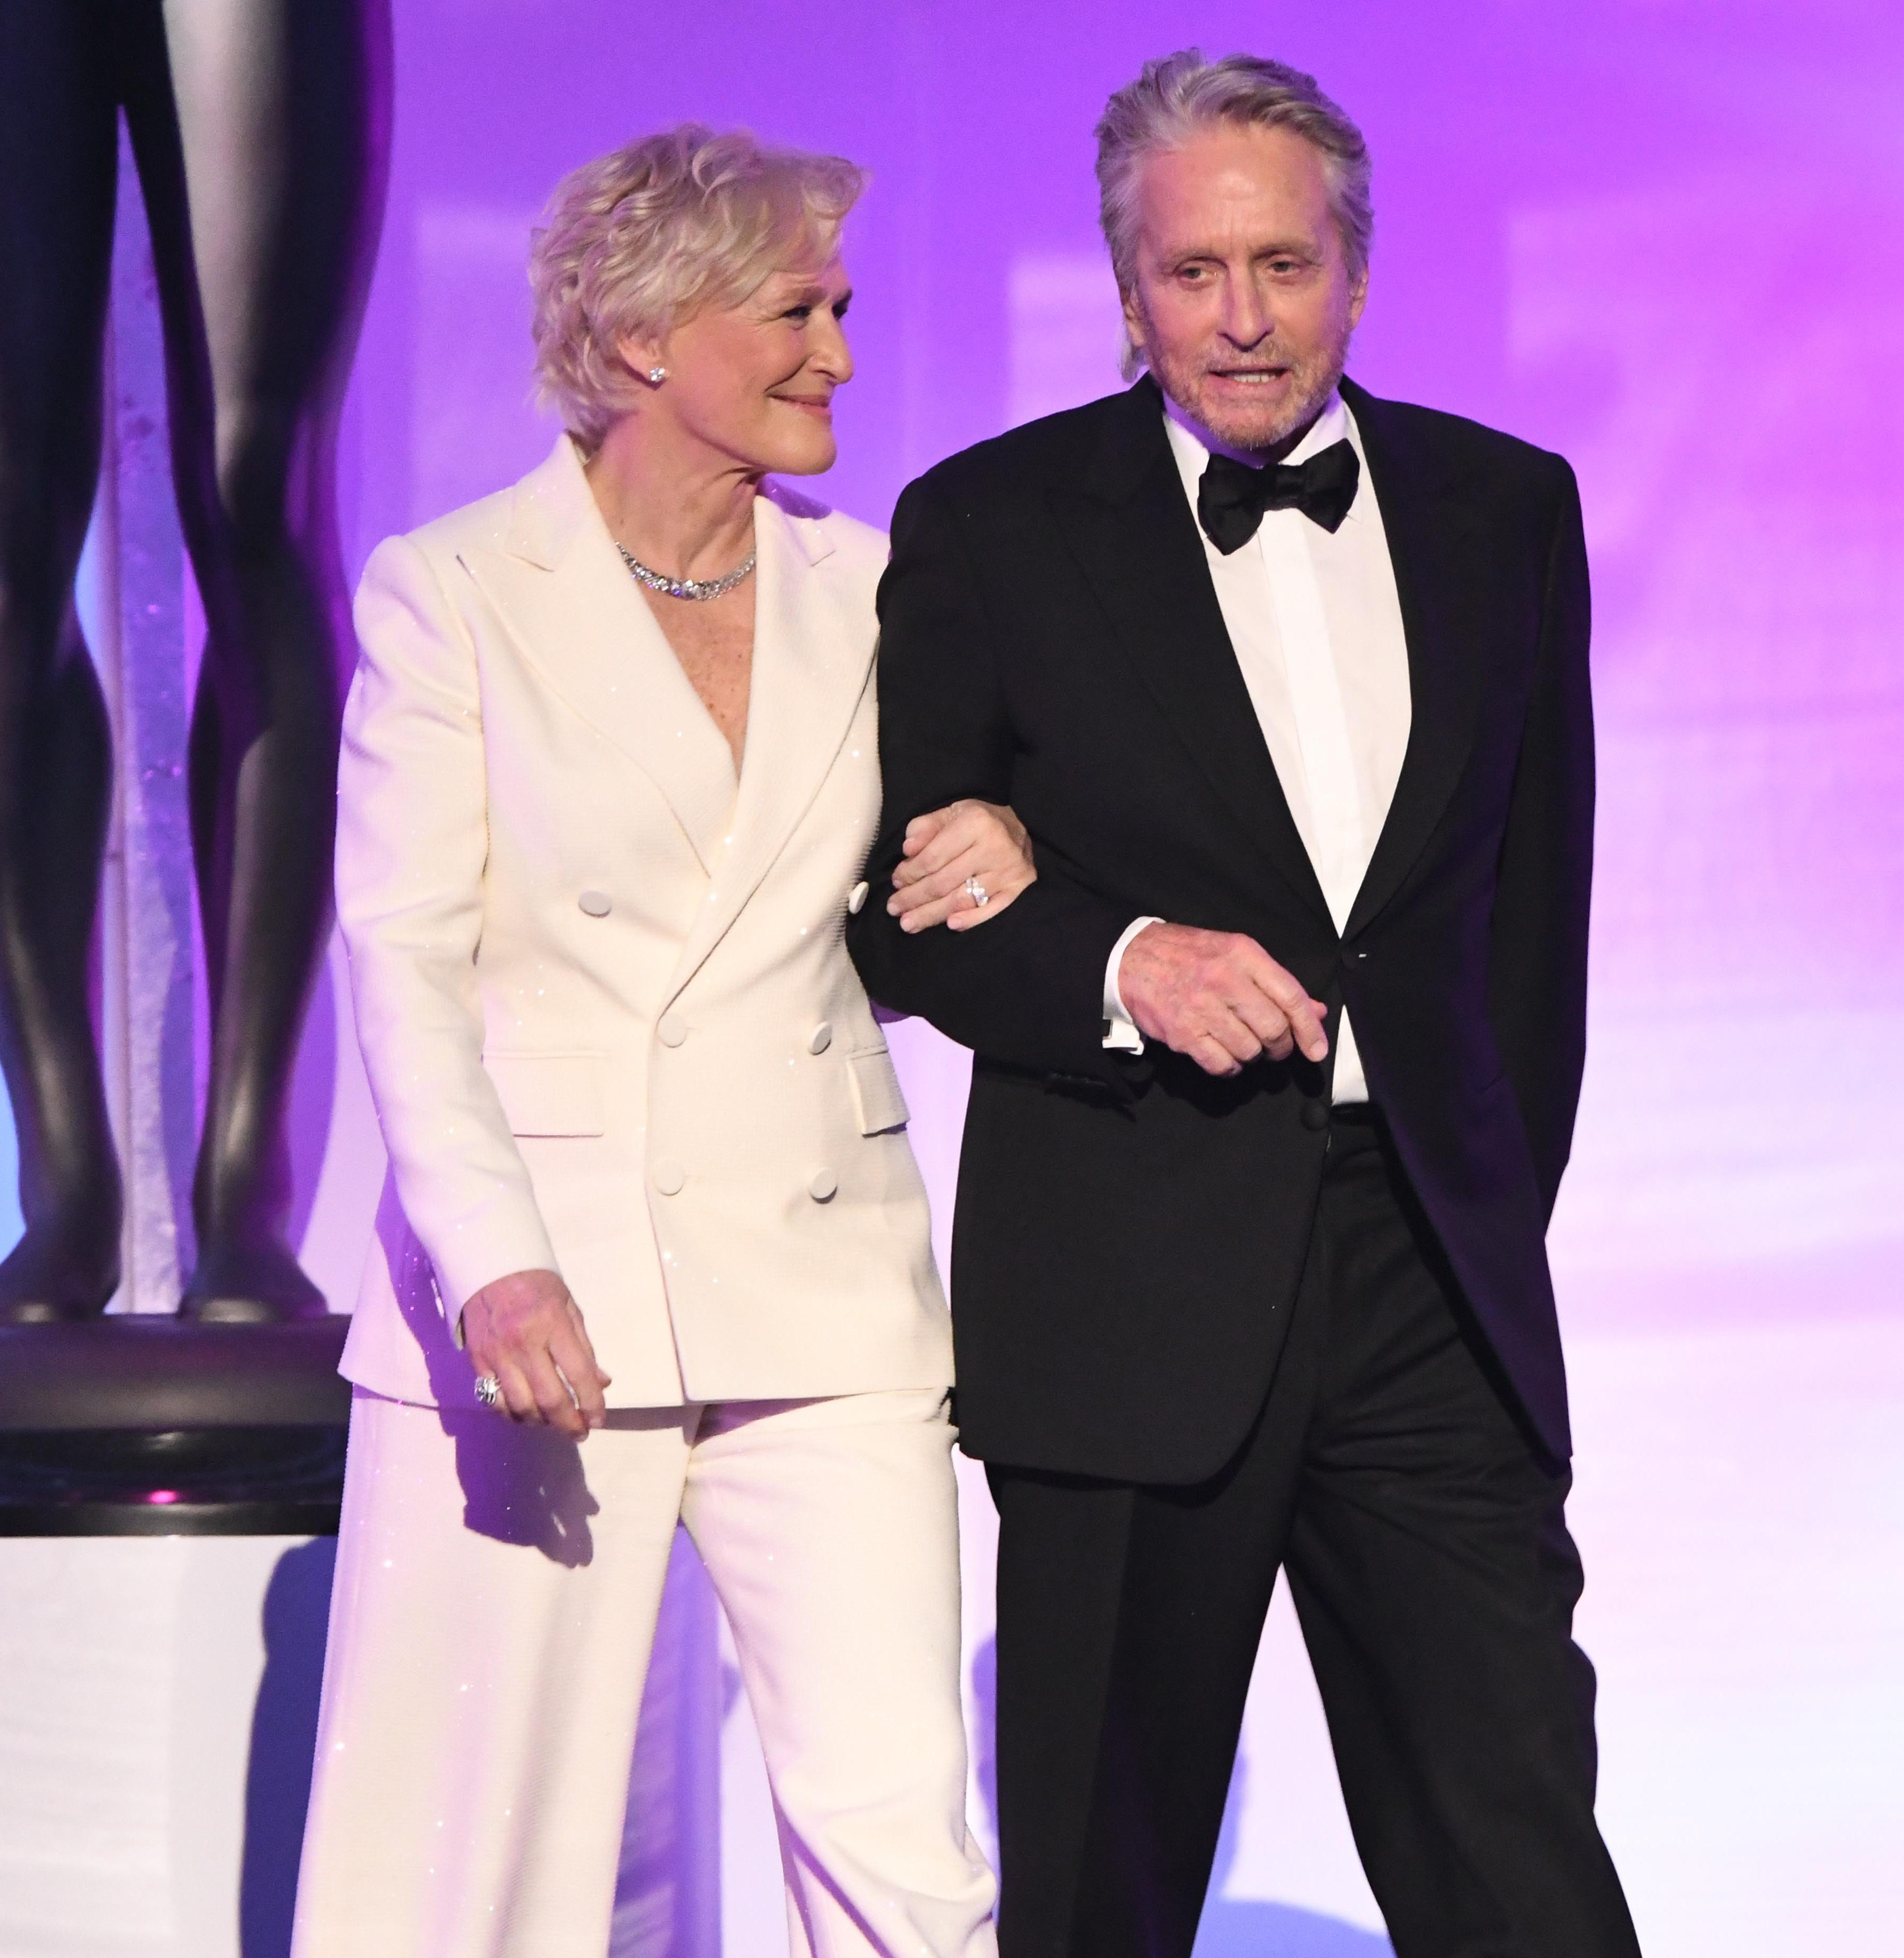 Glenn Close and Michael Douglas present the award for outstanding performance by a female actor in a television movie or limited series.